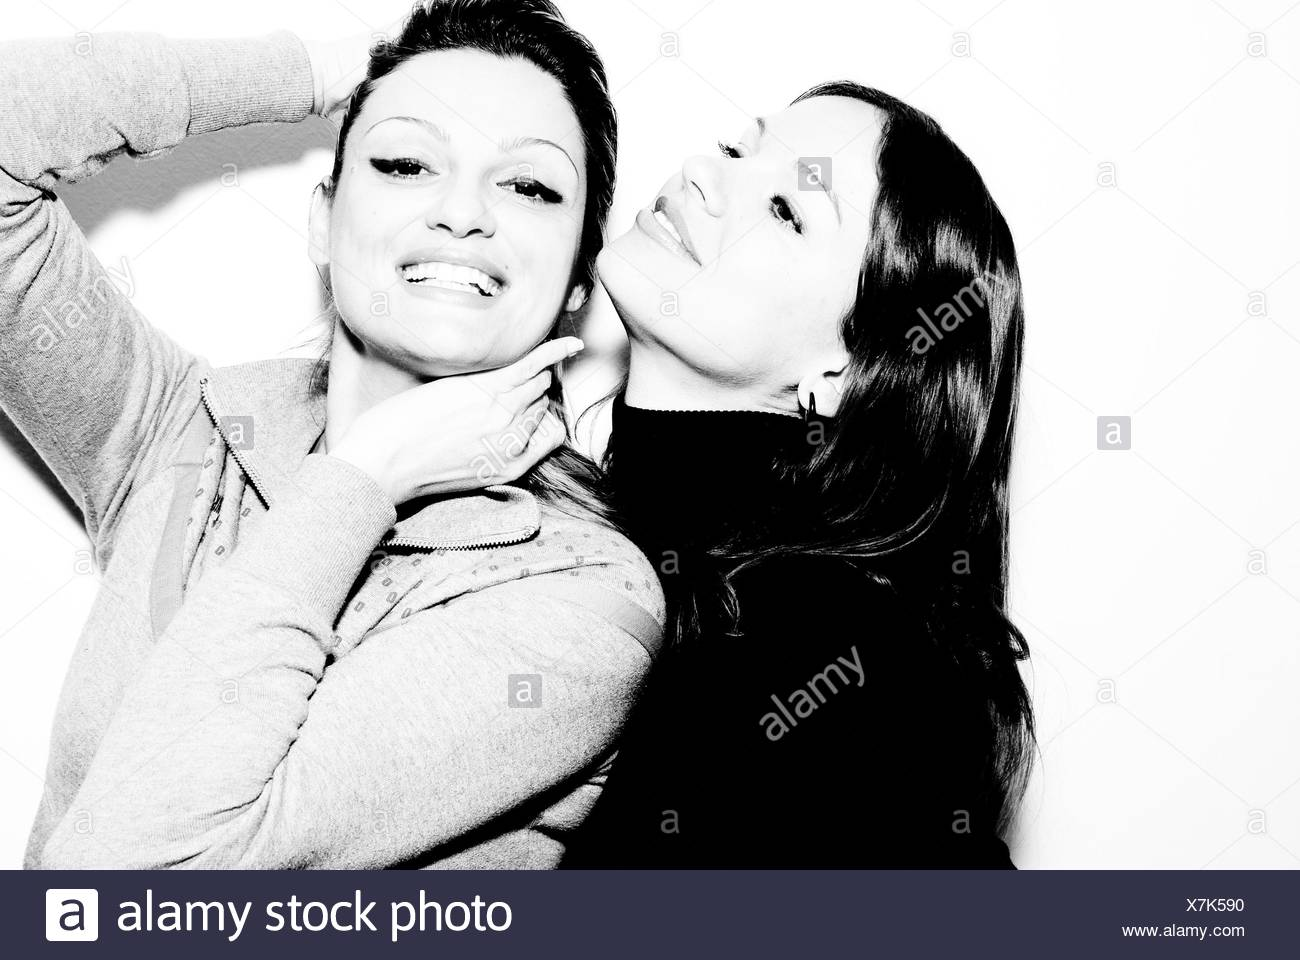 Portrait of two women - Stock Image